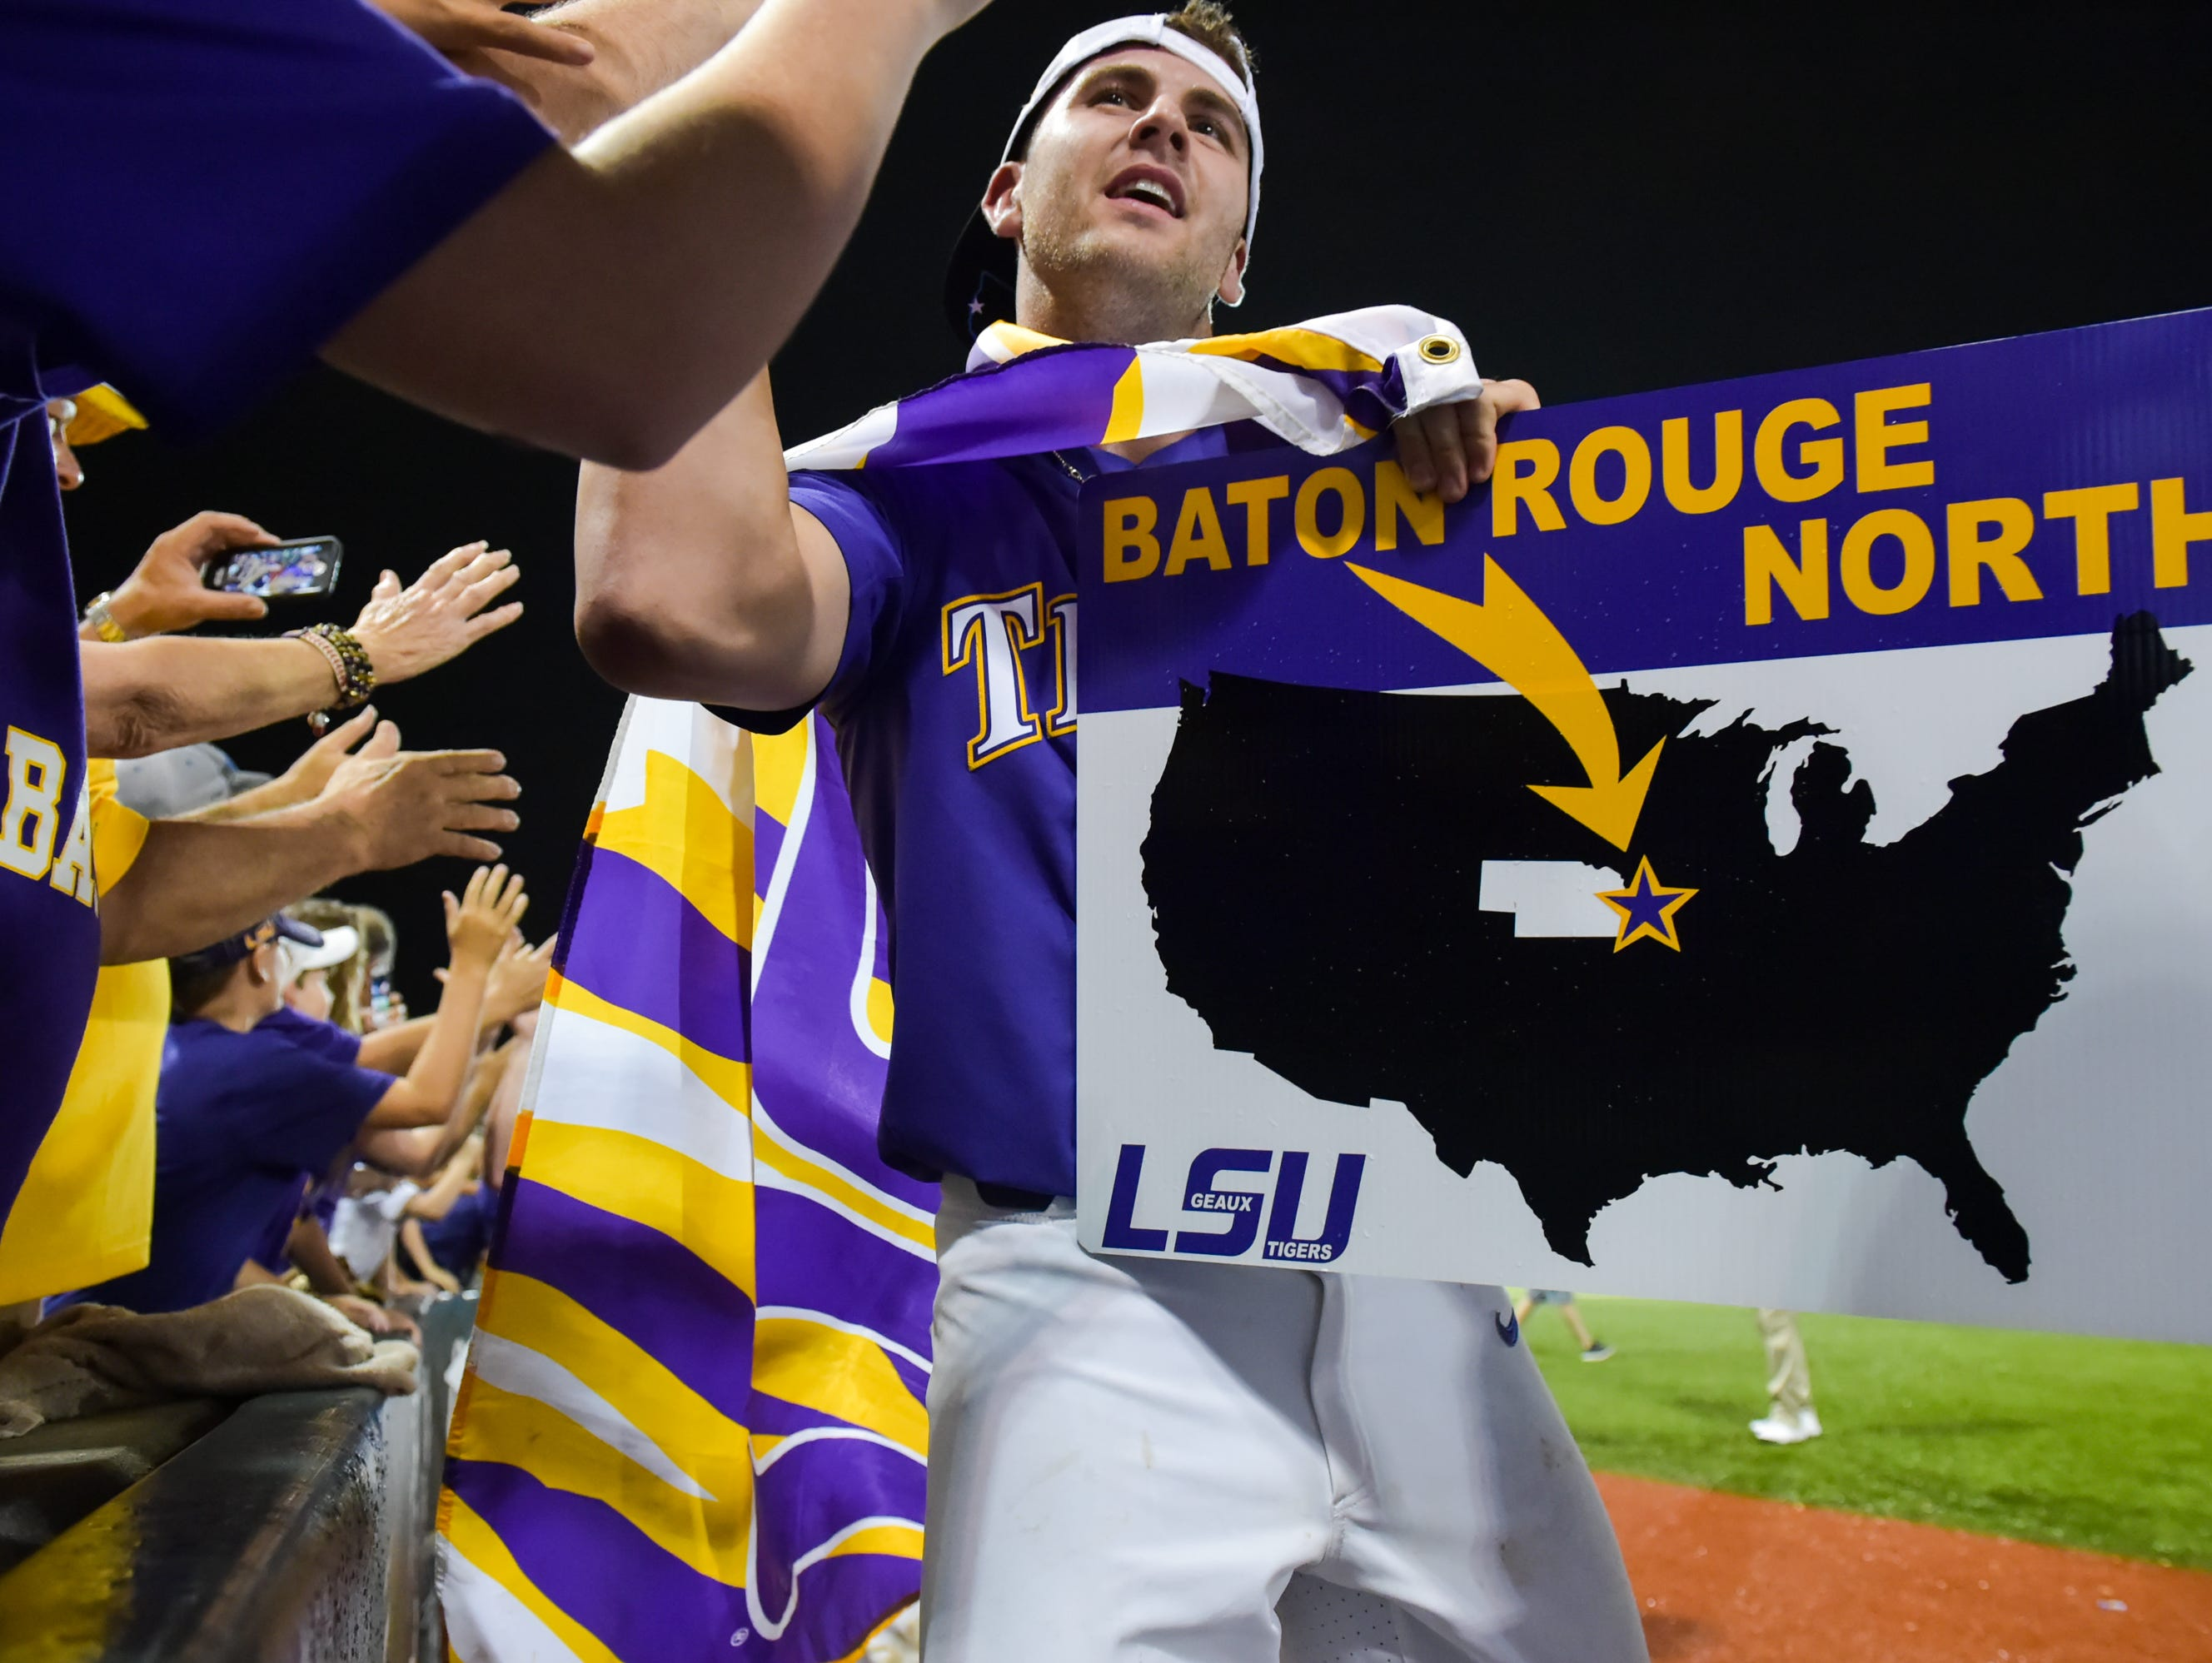 LSU beats Mississippi State 14-4 in game 2 of the NCAA Super Regionals at Alex Box Stadium. - Sunday, June 11, 2017.